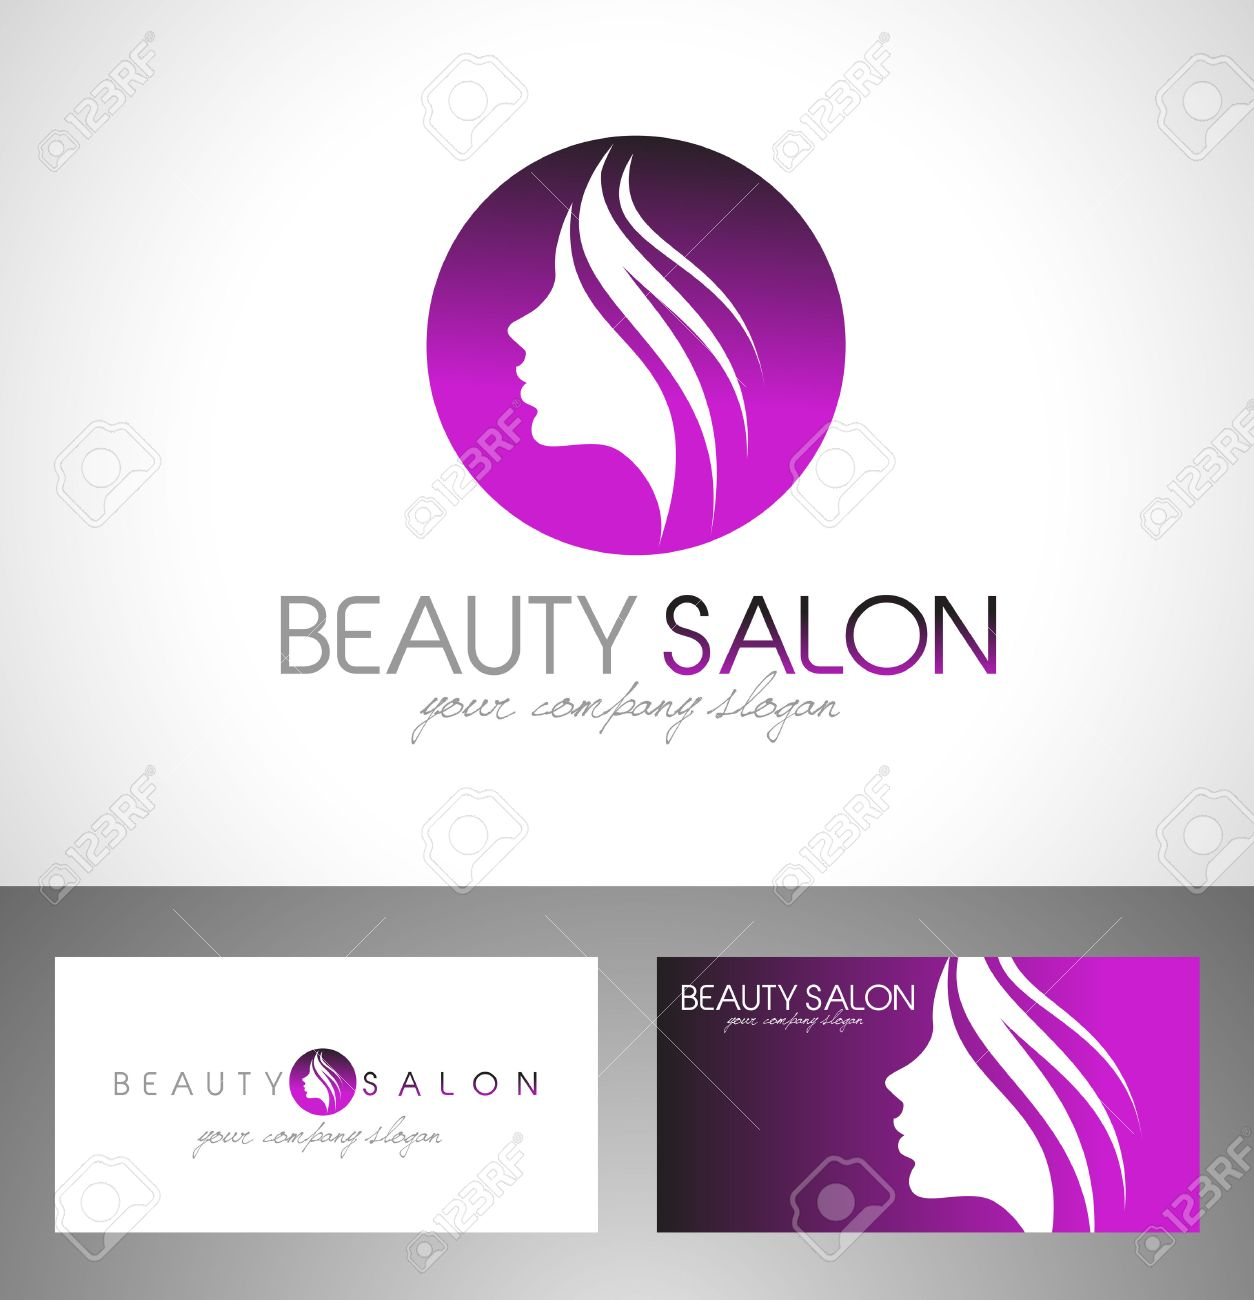 All Logo Samples Face Design Beauty Female DesignCosmetic Salon